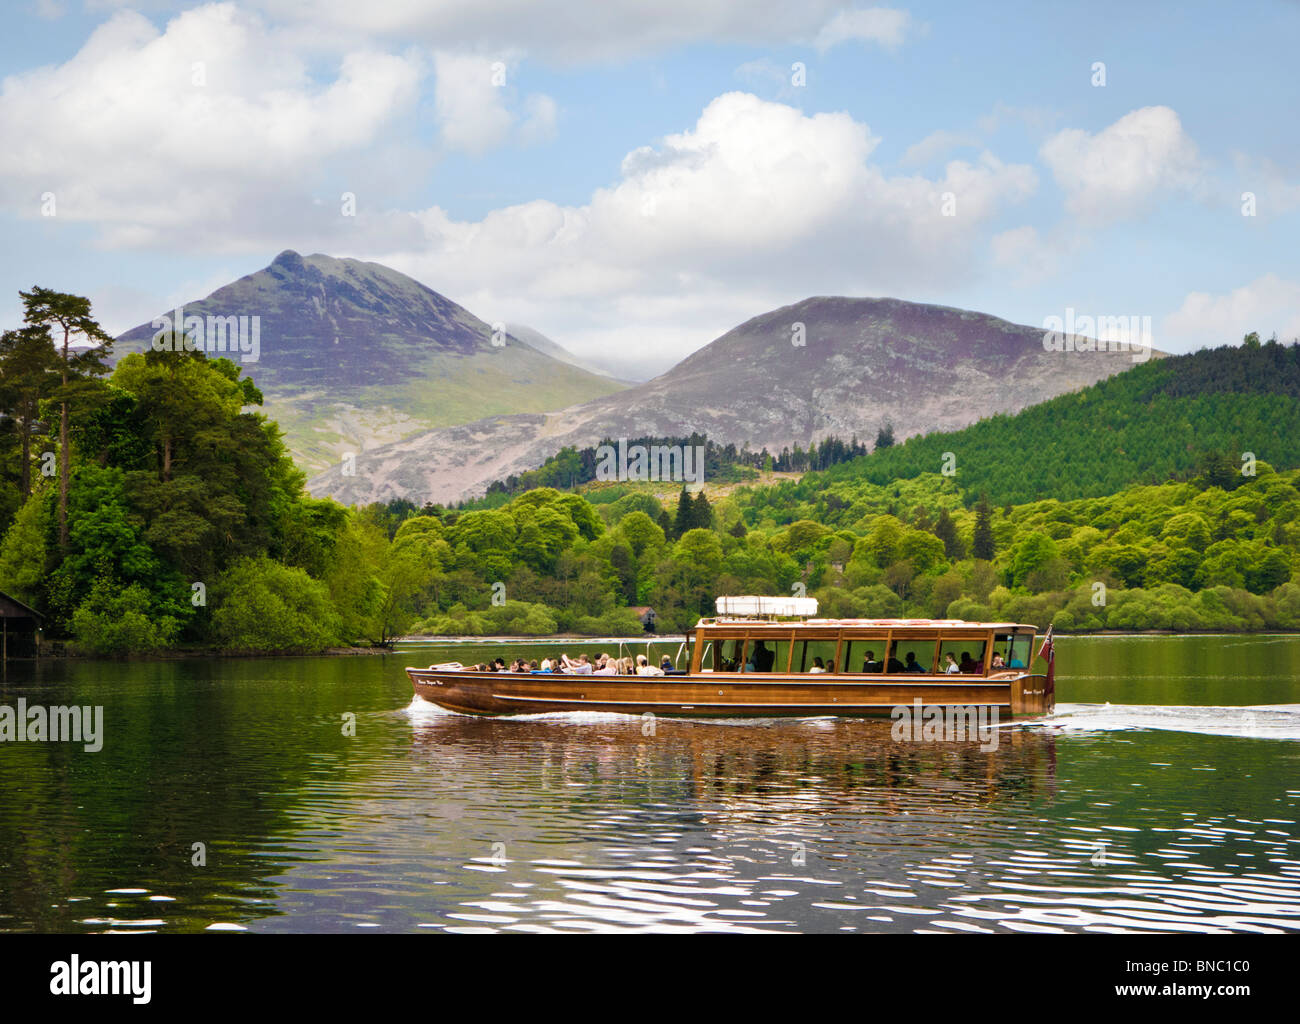 Keswick Launch on Derwentwater lake with Cat Bells, Causey Pike and Barrow mountains, The Lake District, UK - Stock Image